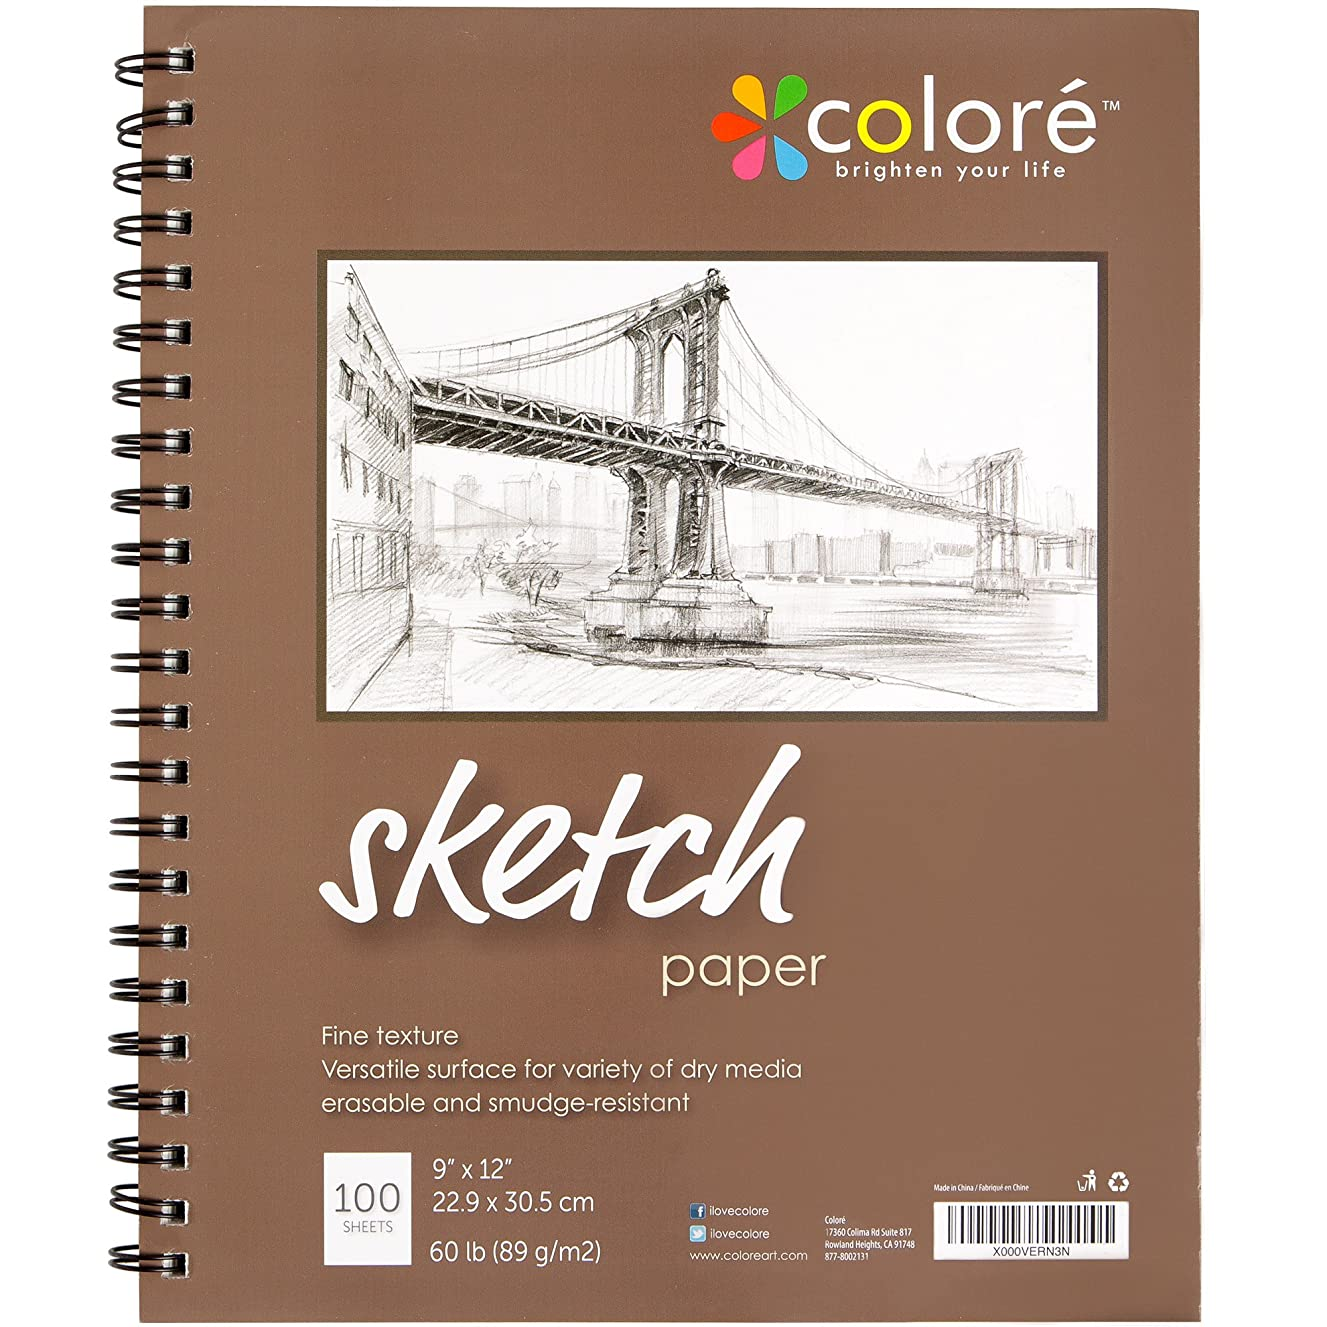 Colore Sketch Pad - Durable Sketching Paper And Notebook Material - Great For Drawing With Colored Pencils - 9x12 Spiral Sketchbook - Perfect Art Book & Craft Supplies Set For Teens & Artists - 2 Pack